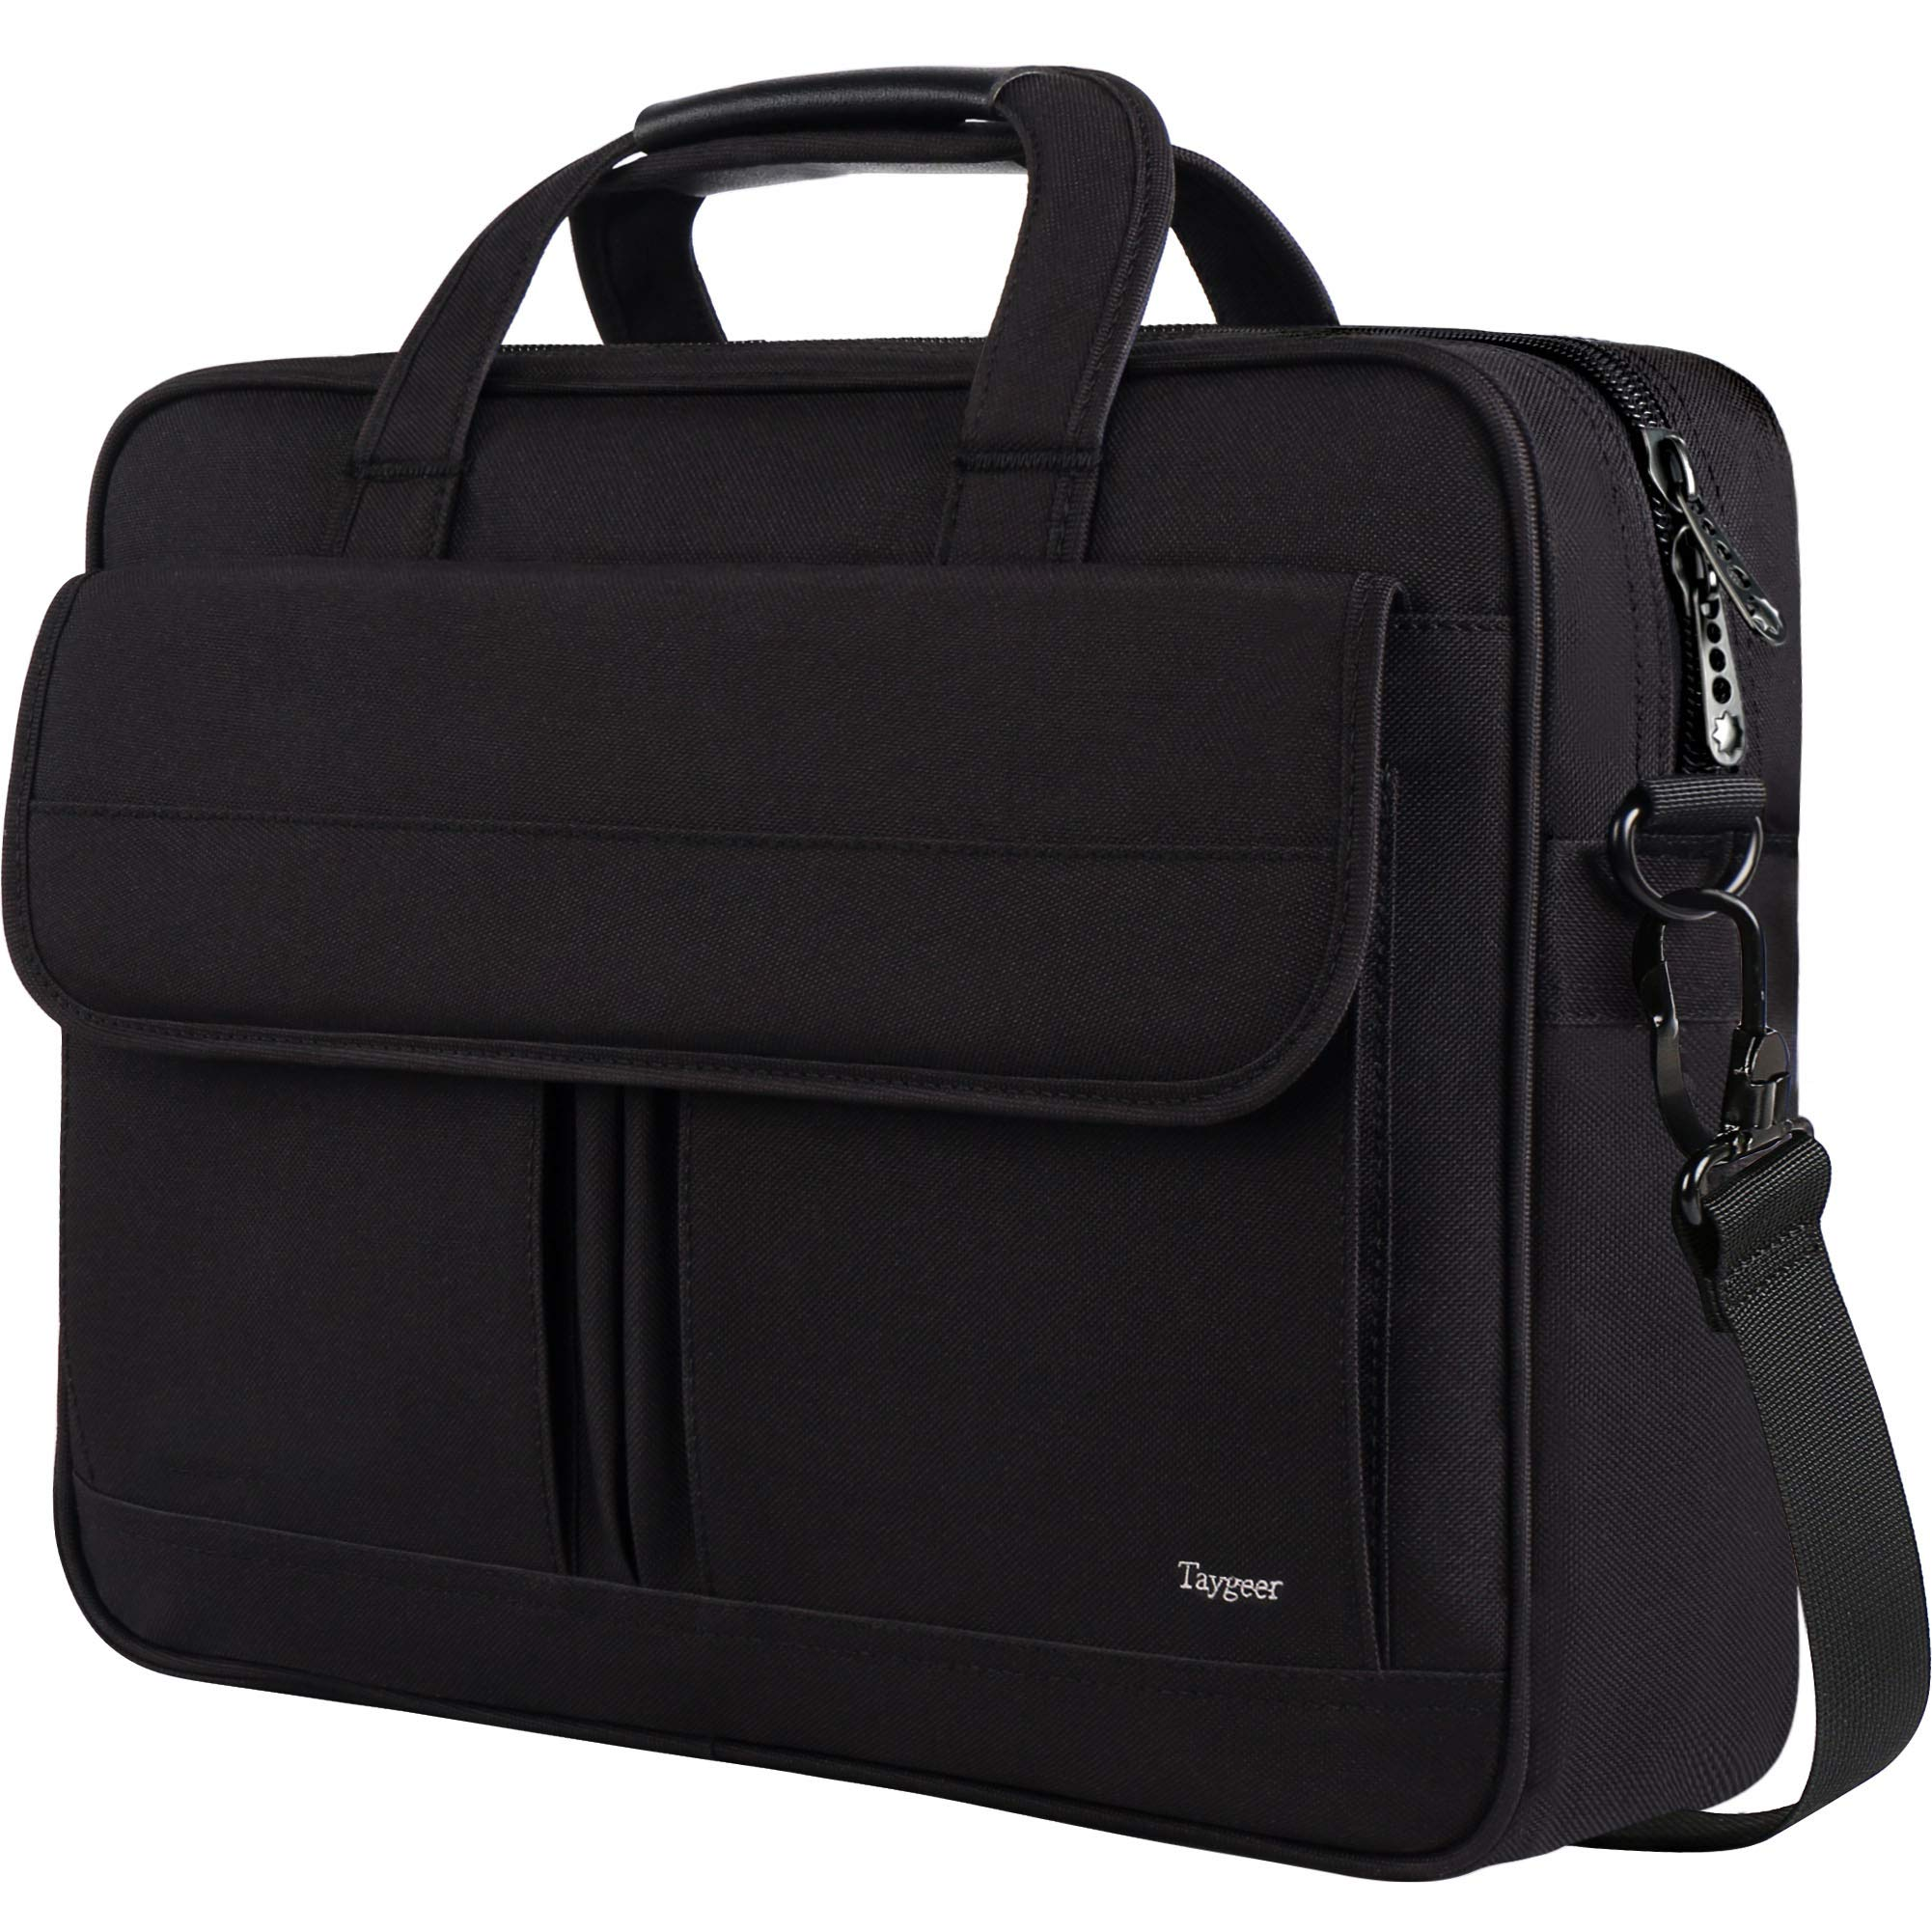 17 inch Laptop Bag, Laptop Briefcase Business Office Bag for Men Women, Taygeer Water-Repellent Computer Shoulder Messenger Bag with Organizer Fits 15.6 17 Inch Notebook MacBook HP Table, Black by Taygeer